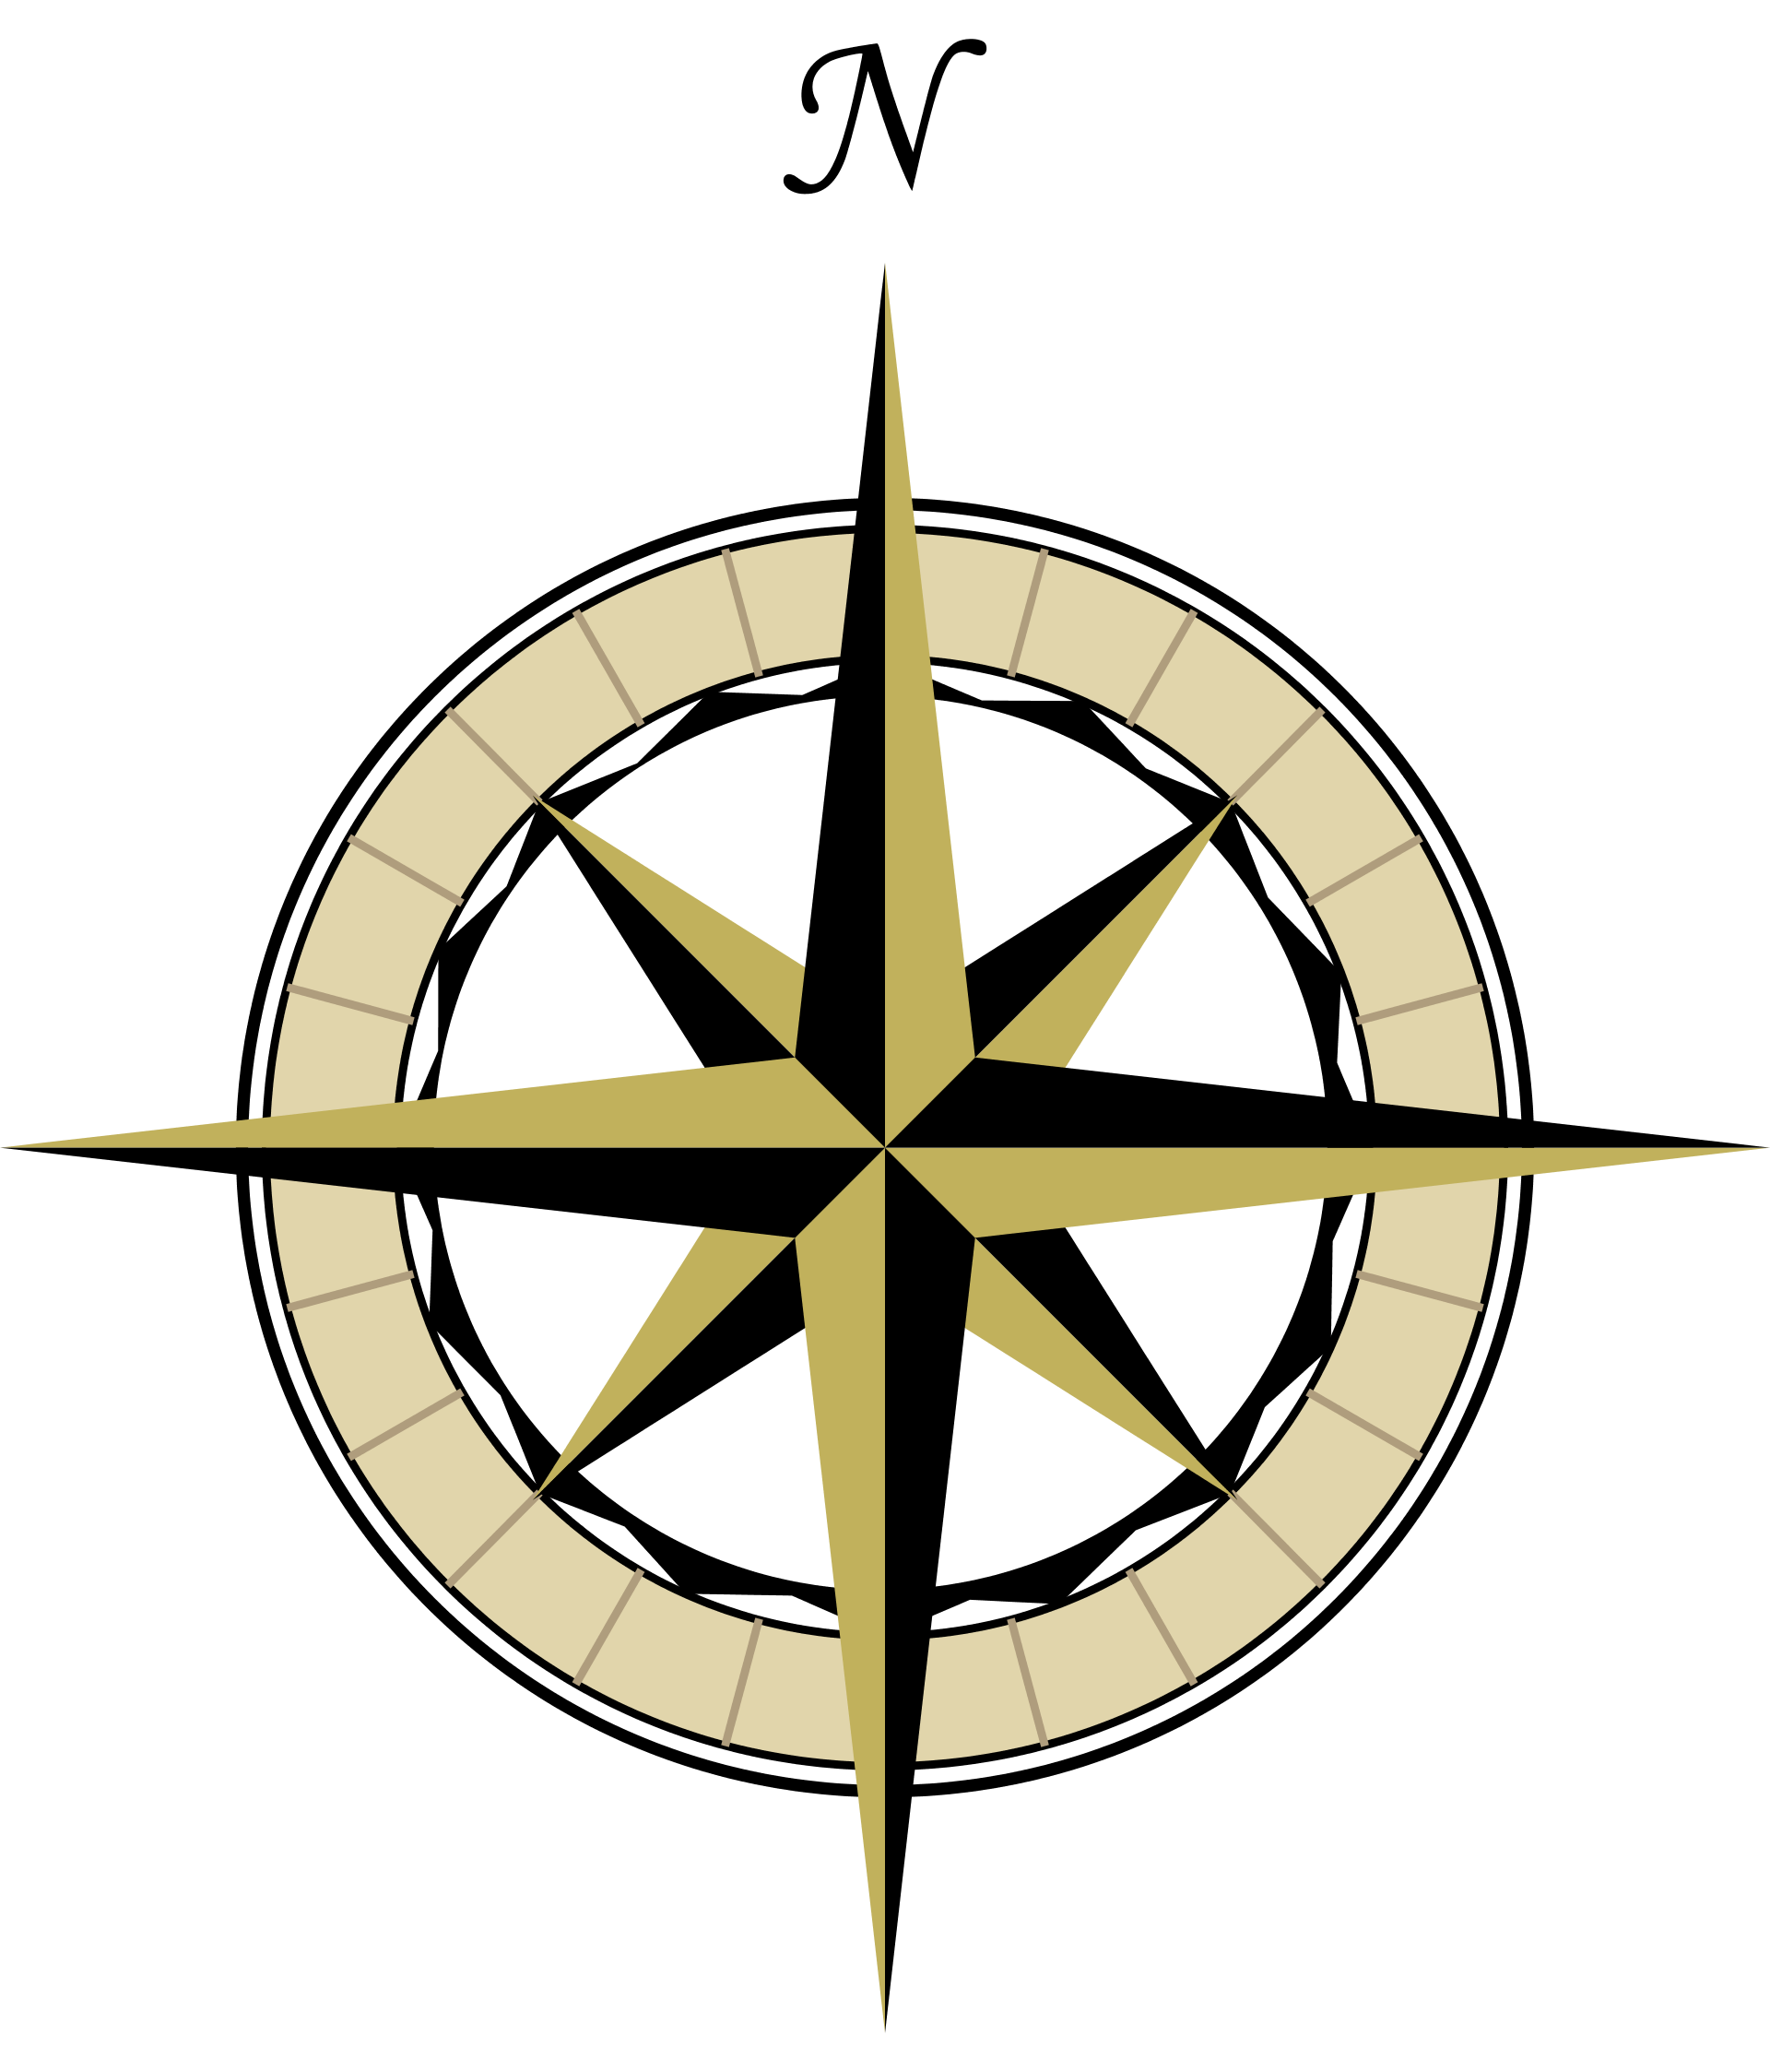 Compass Clip Art to Download.